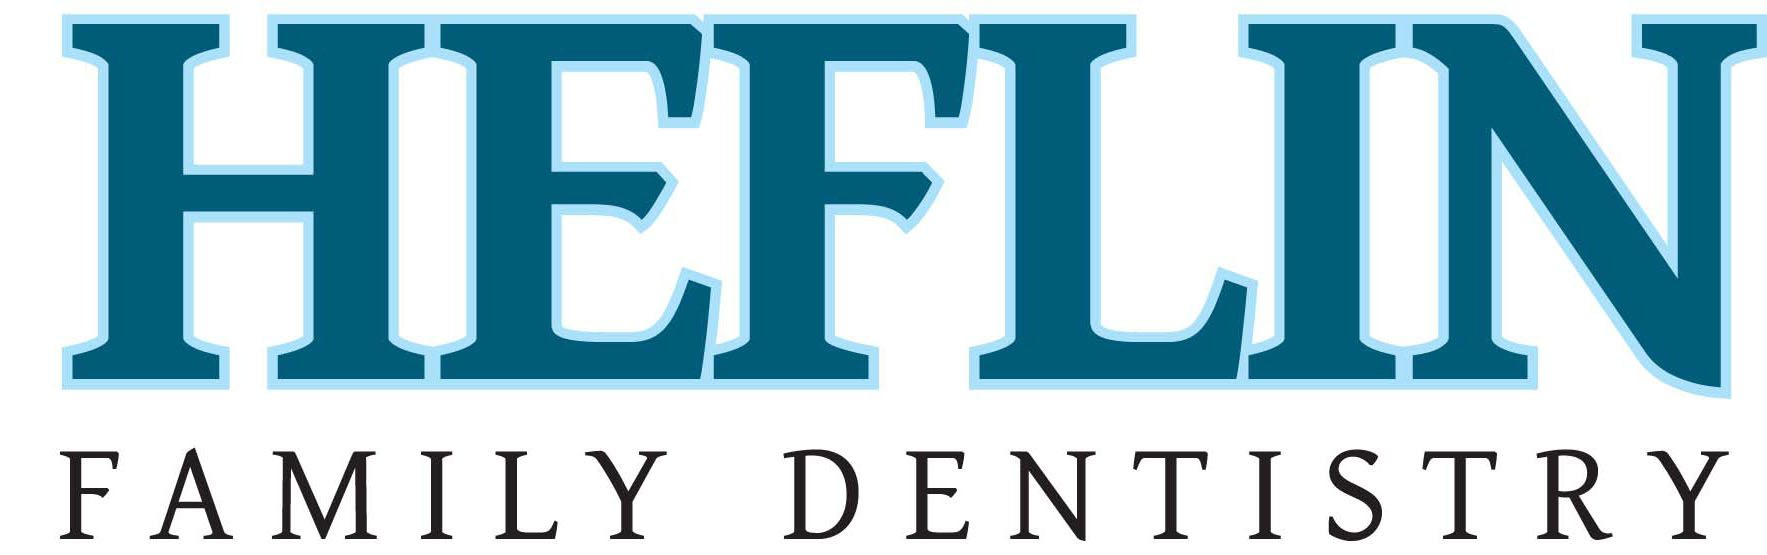 Dentist Albuquerque